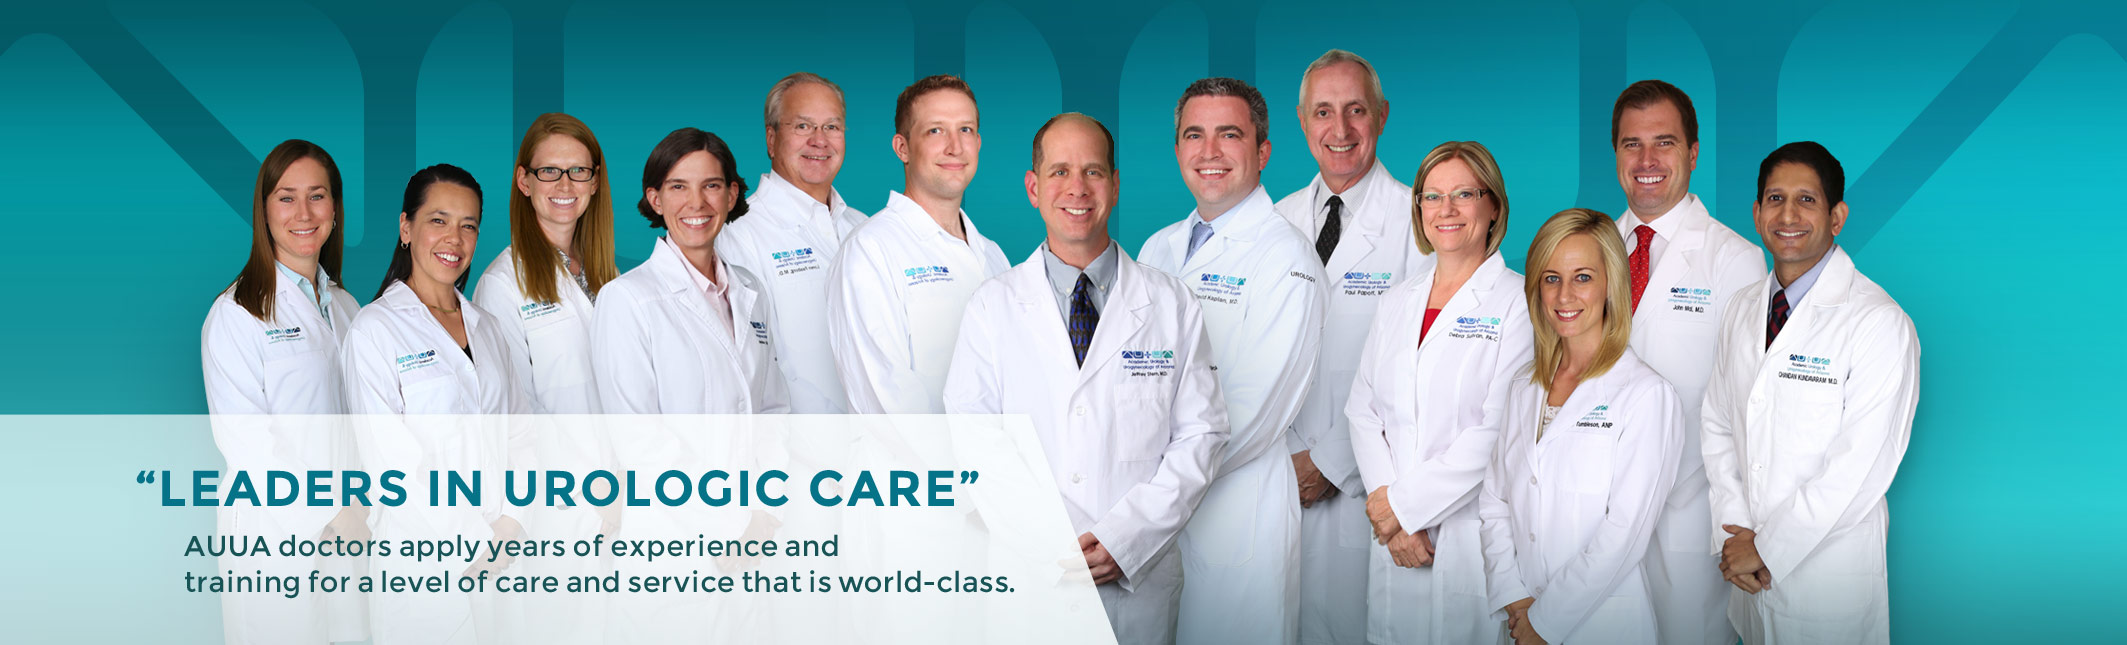 Leaders in Urologic Care - AUUA doctors apply years of experience and training for a level of care and service that is world class.